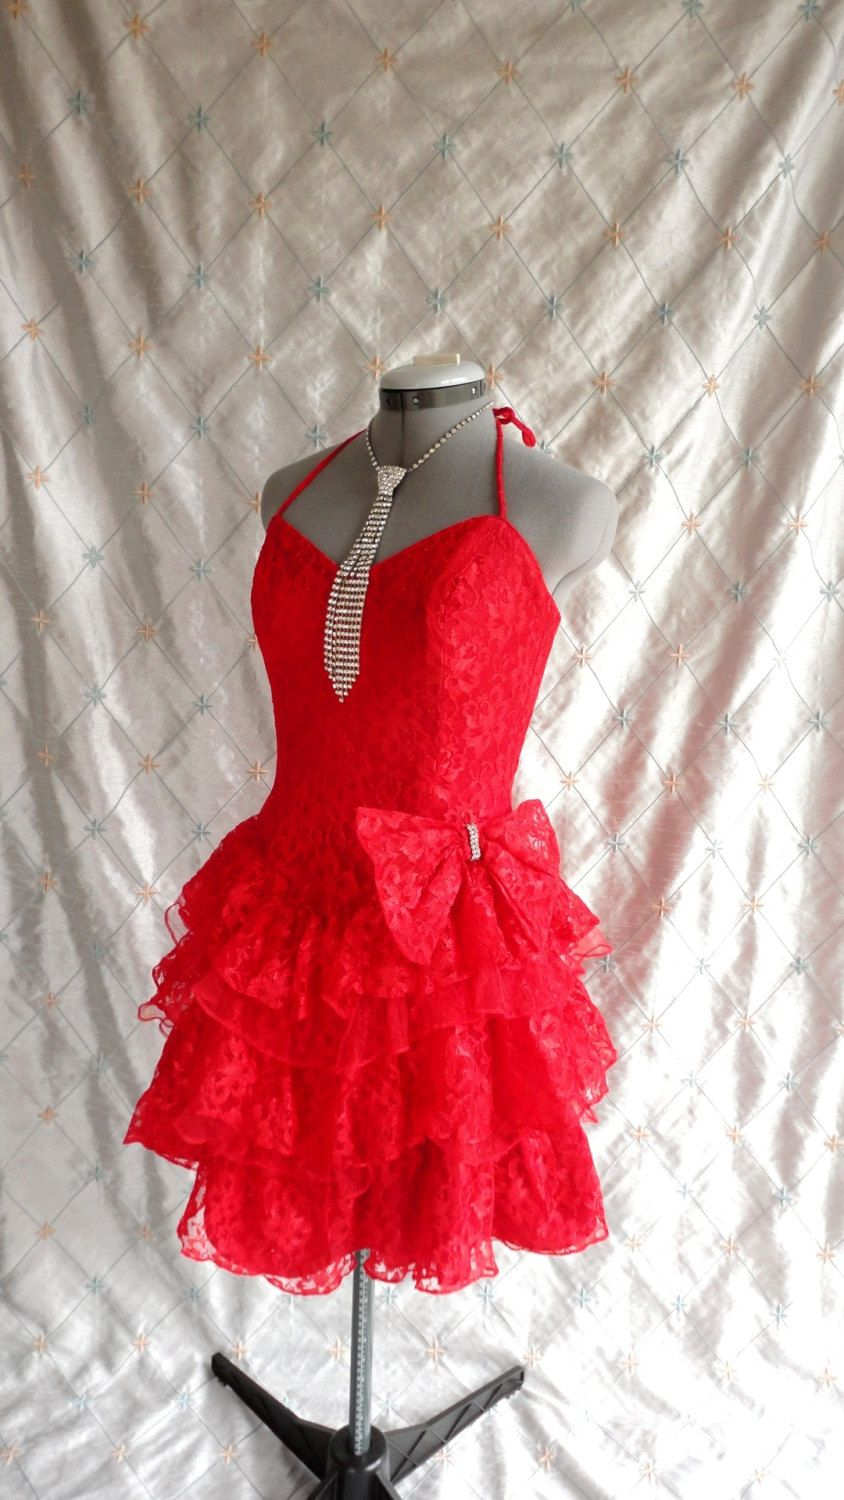 S dress really love the necklace fashion passion